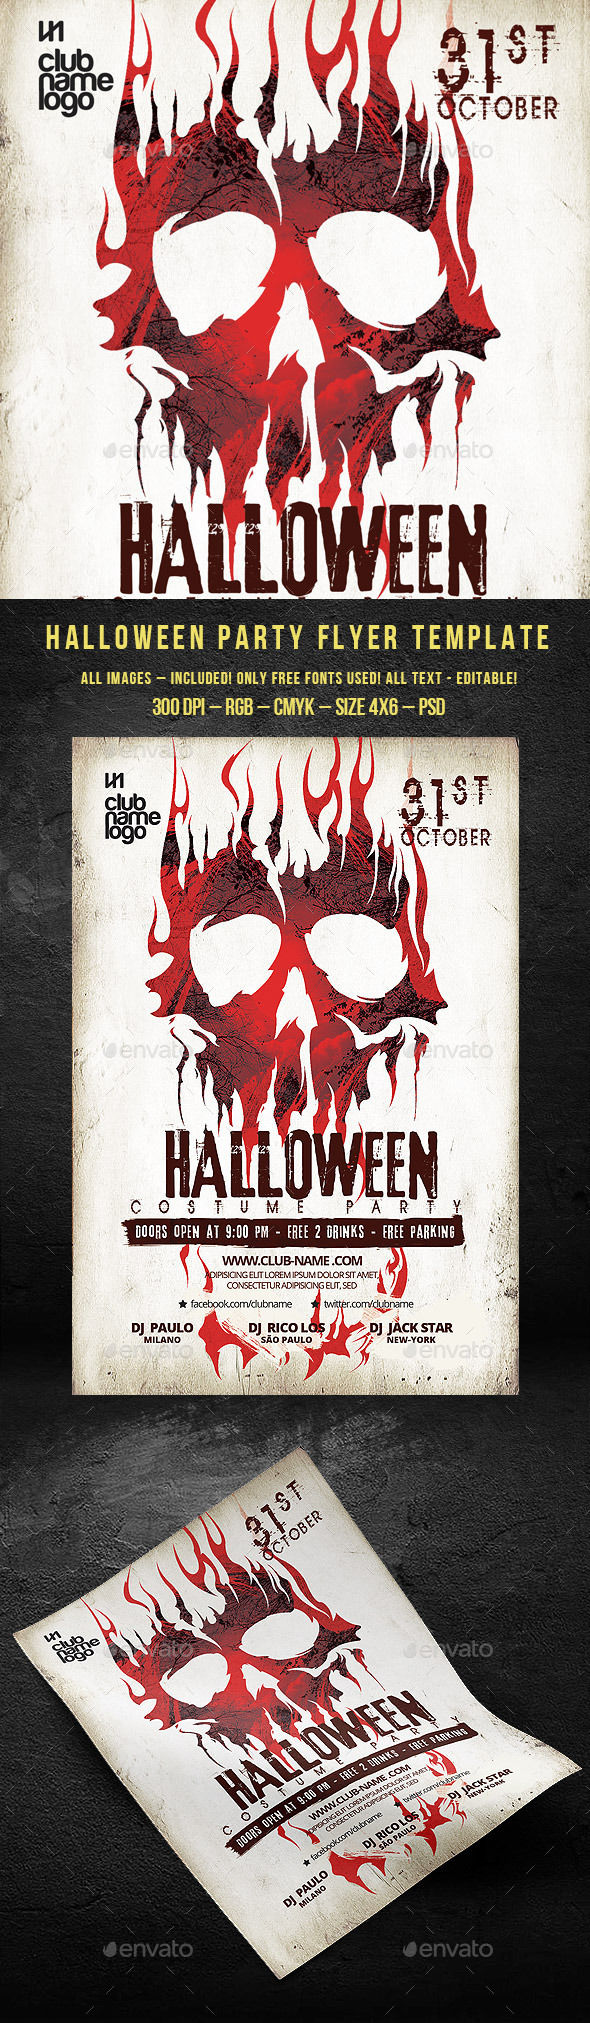 Halloween Party by BigWeek (Halloween party flyer)